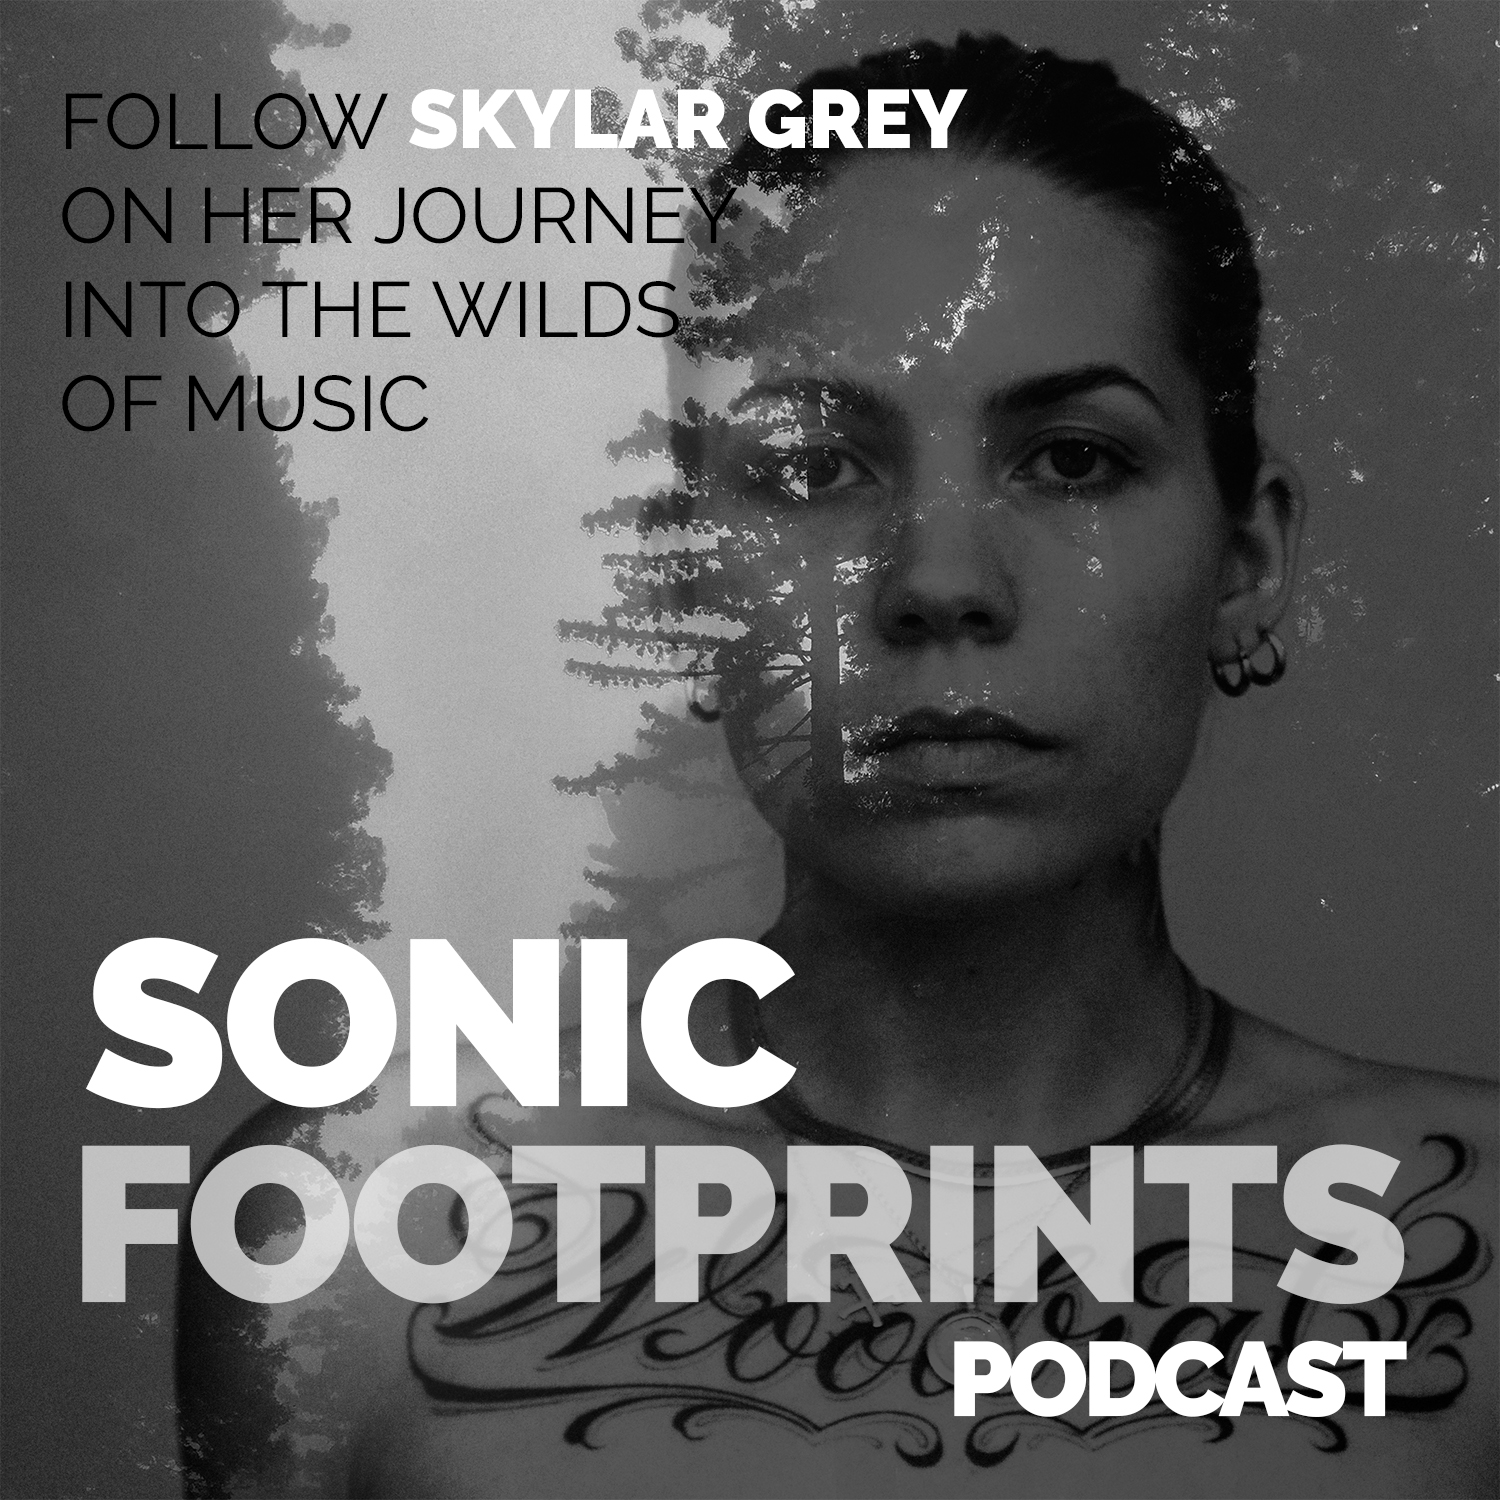 Sonic Footprints with Skylar Grey